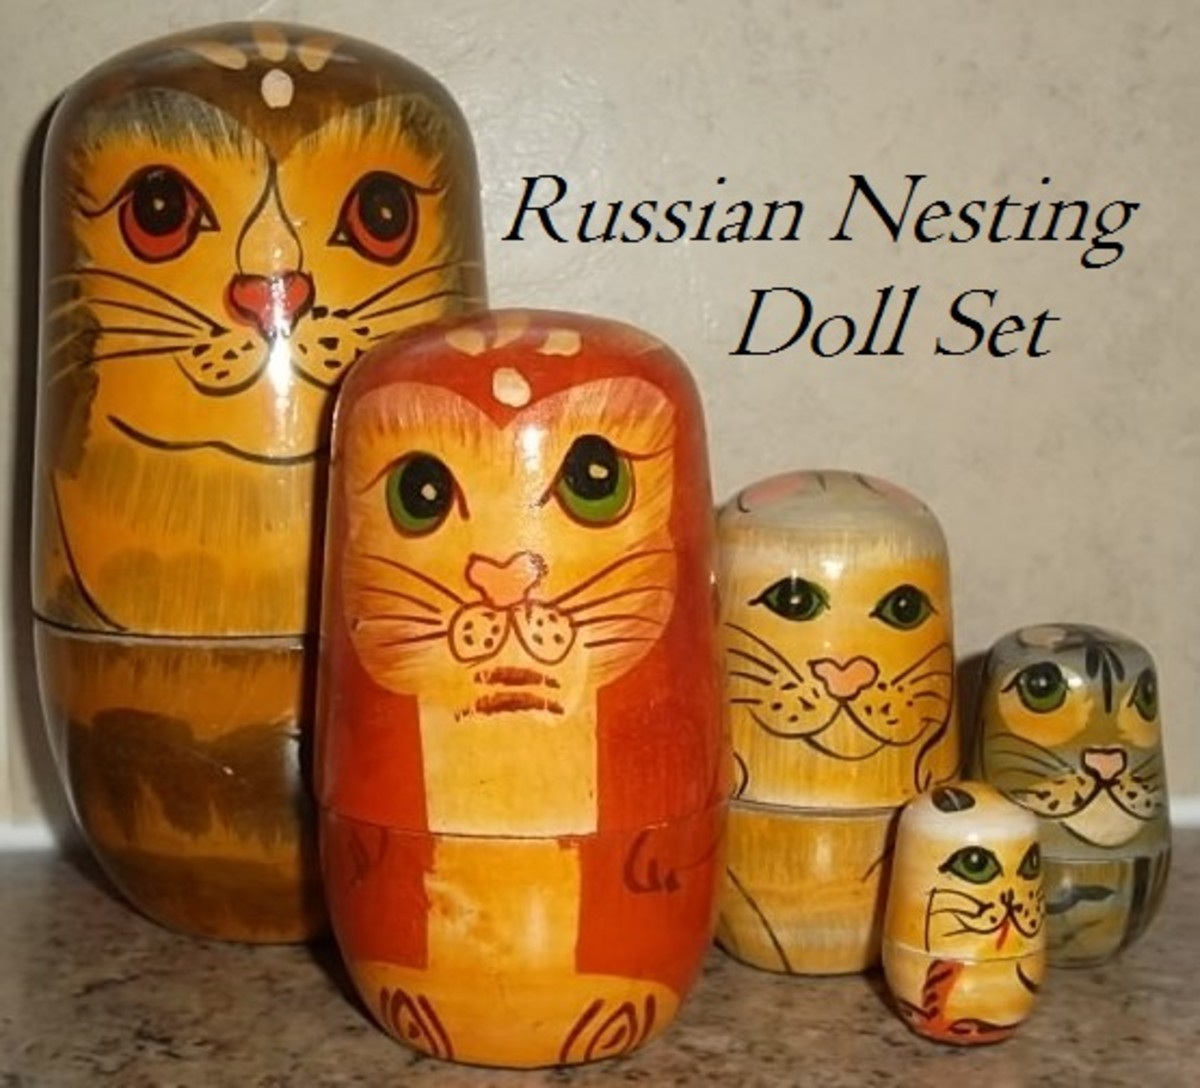 Russian nesting doll or known as Matryoshka doll or, Babushka doll